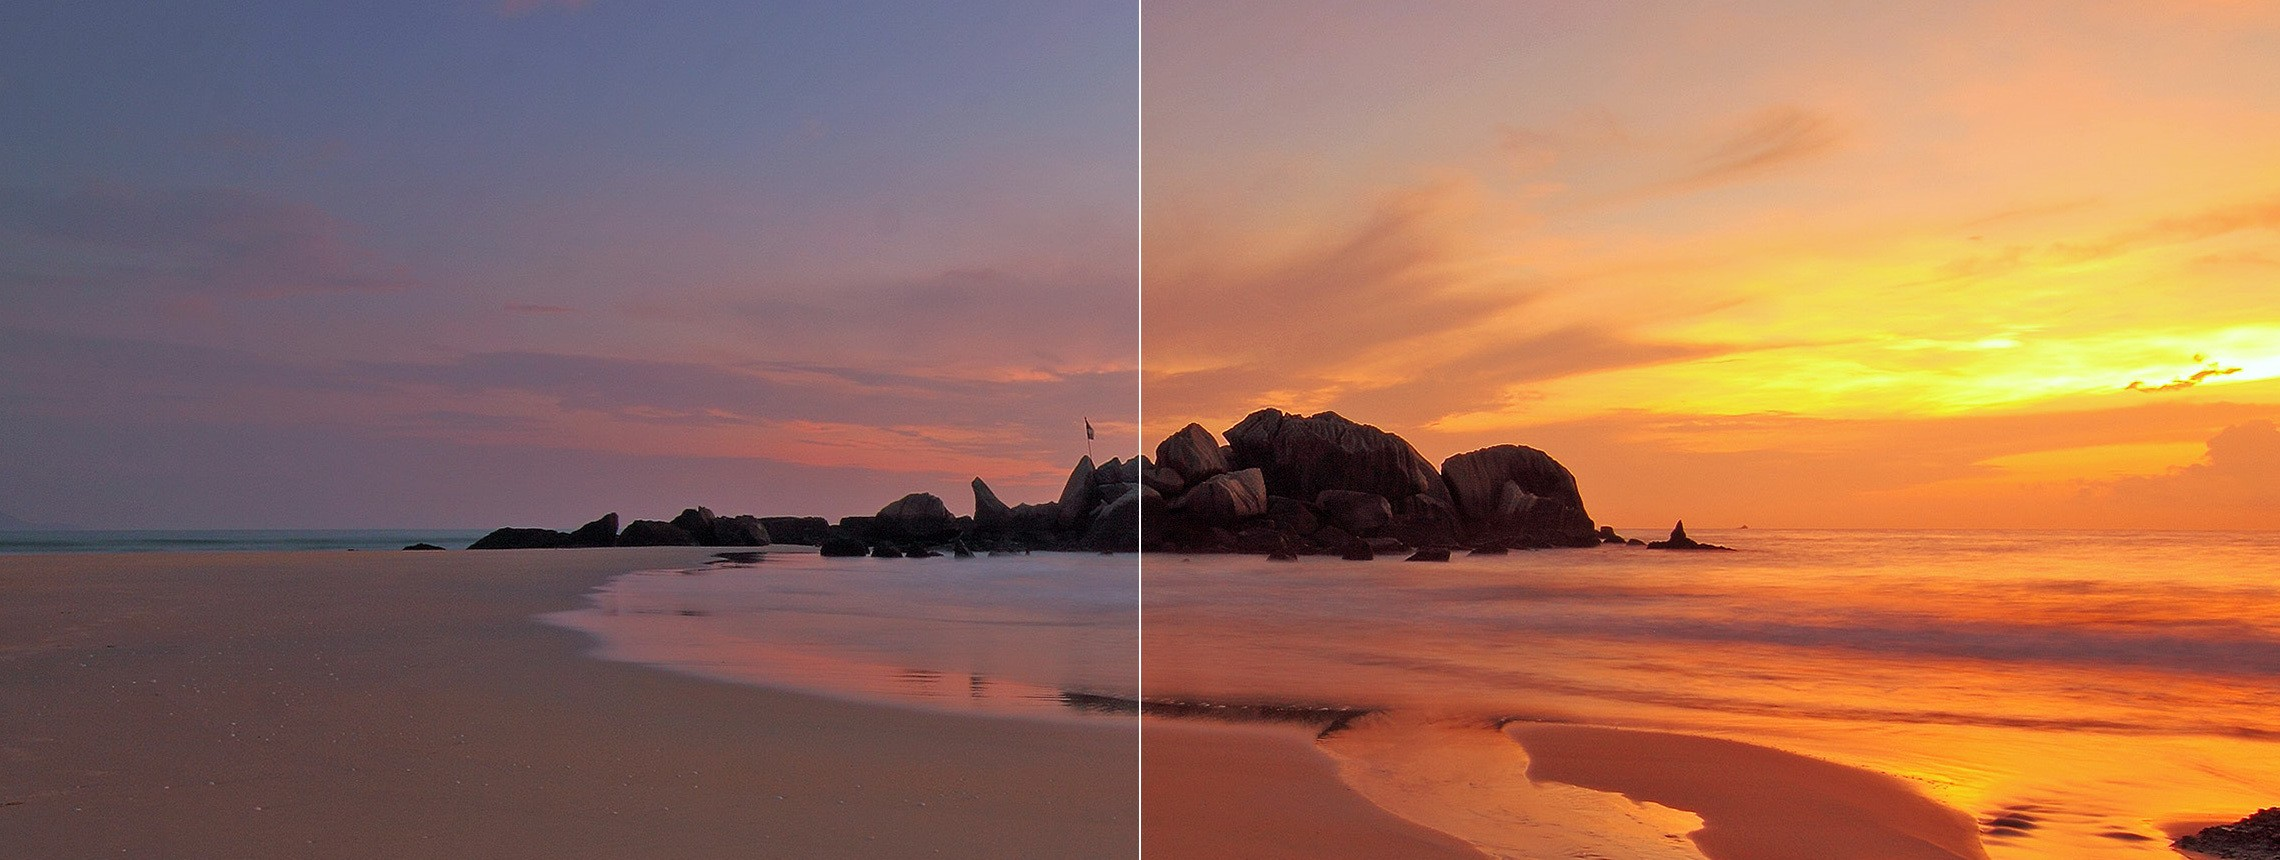 How to Easily Enhance a Sunset Photo in Photoshop